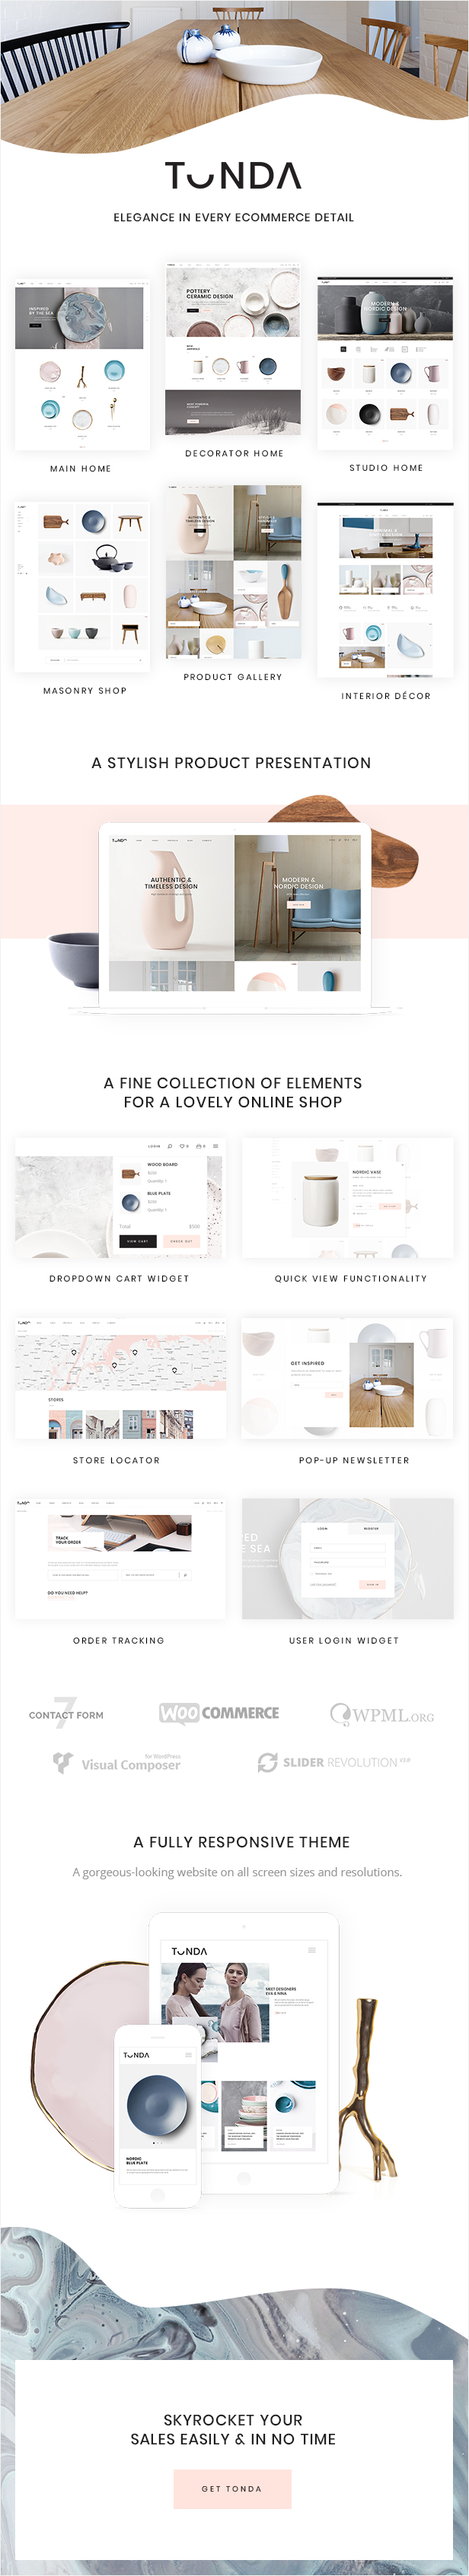 WordPress theme Tonda - A Modern, Elegant WooCommerce Theme (WooCommerce)